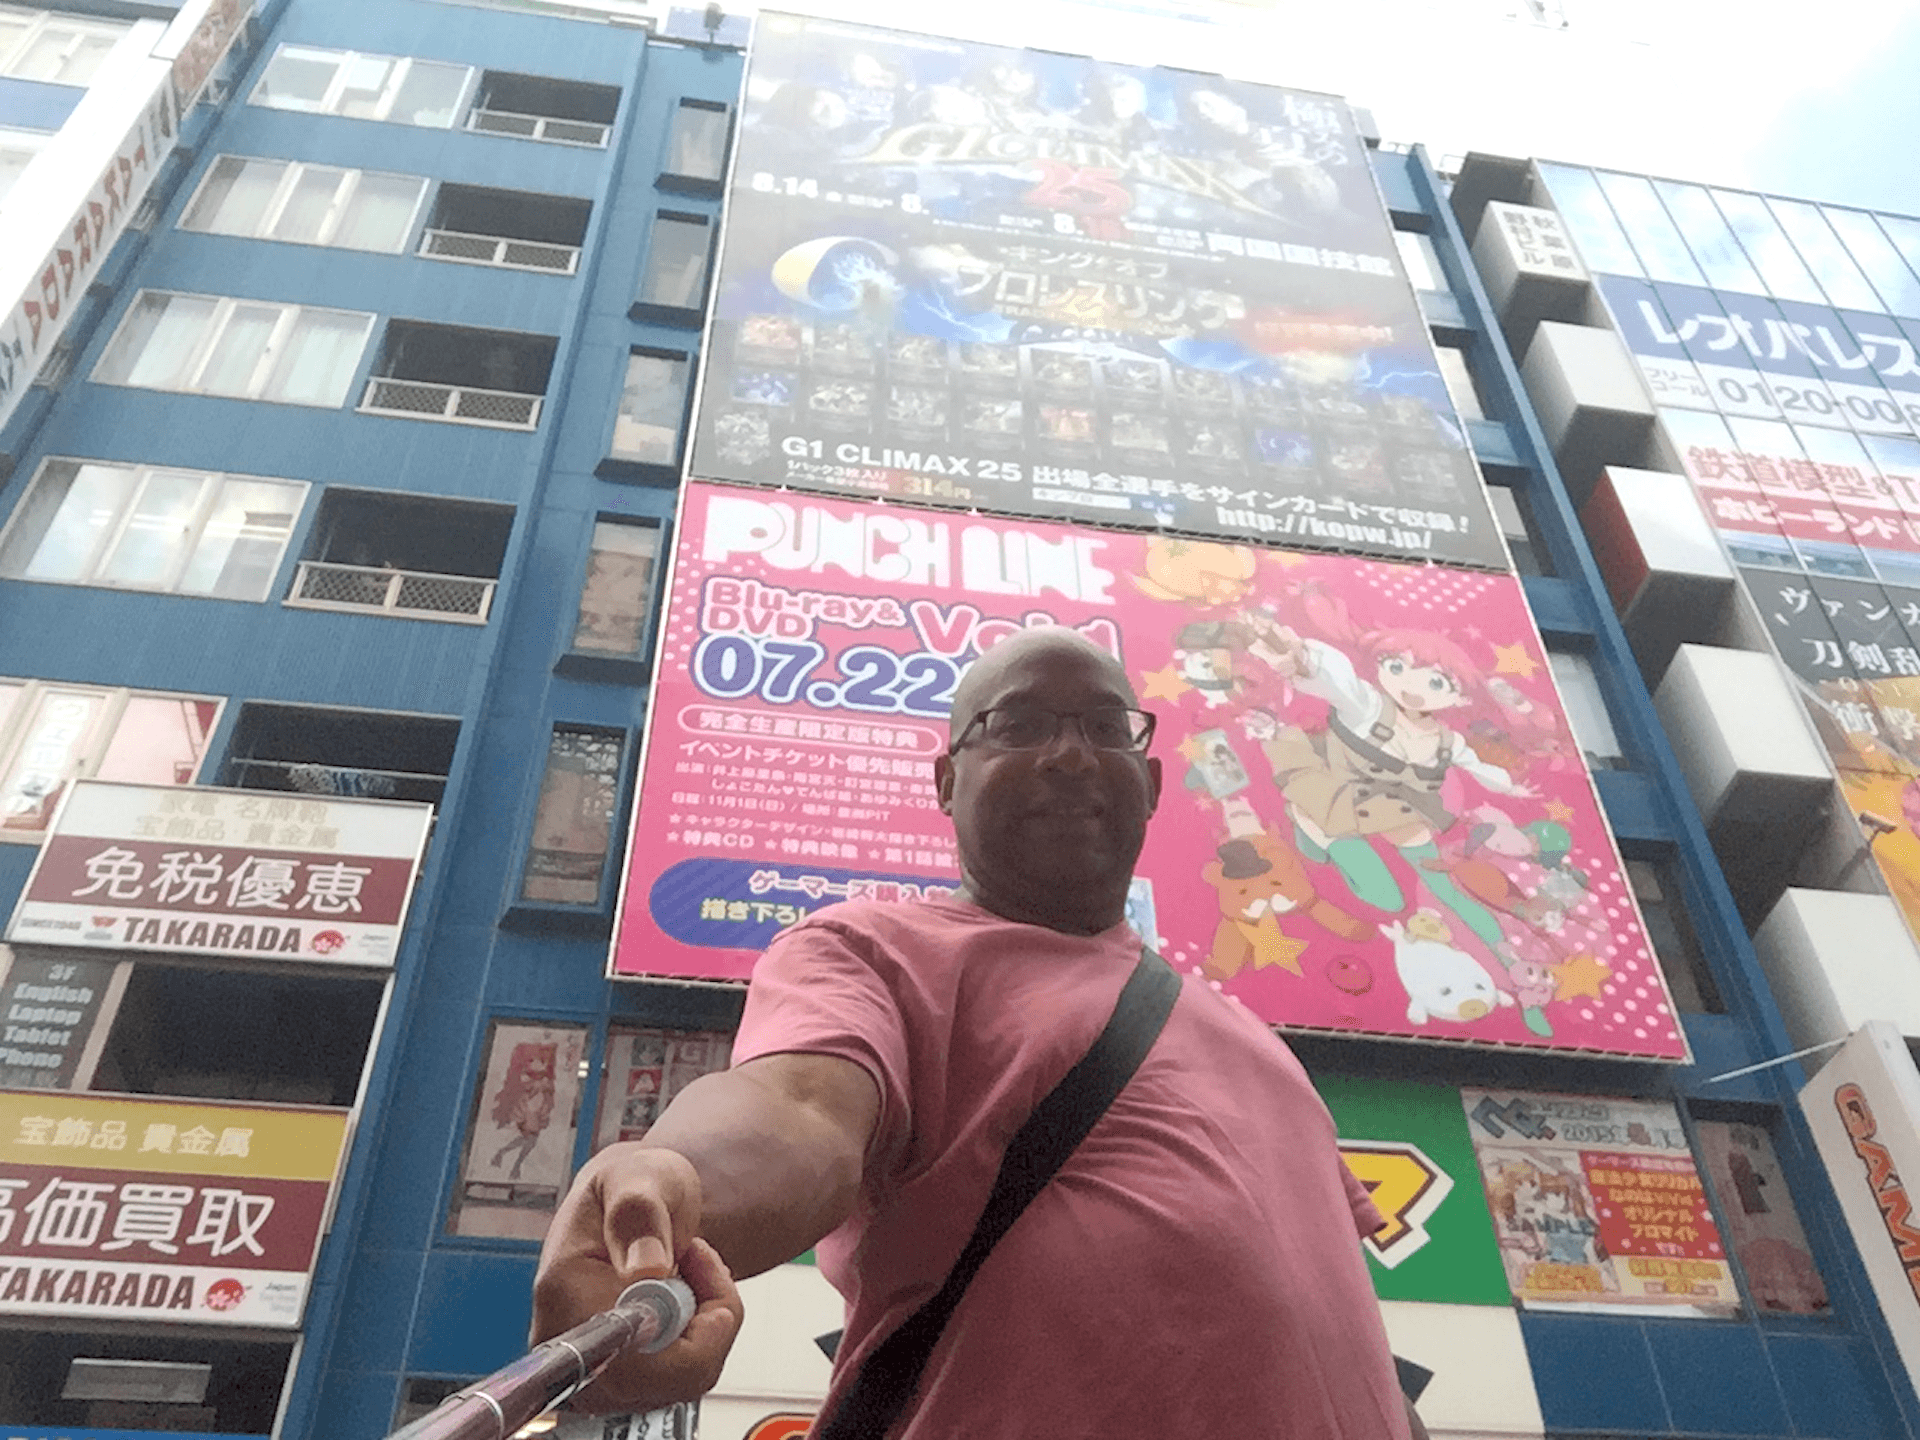 Show Notes Gear Links - Walking Around Akihabara Tokyo What To Do 2018 - Loot Anime Discount Code 2018 🇯🇵 🏙 📦